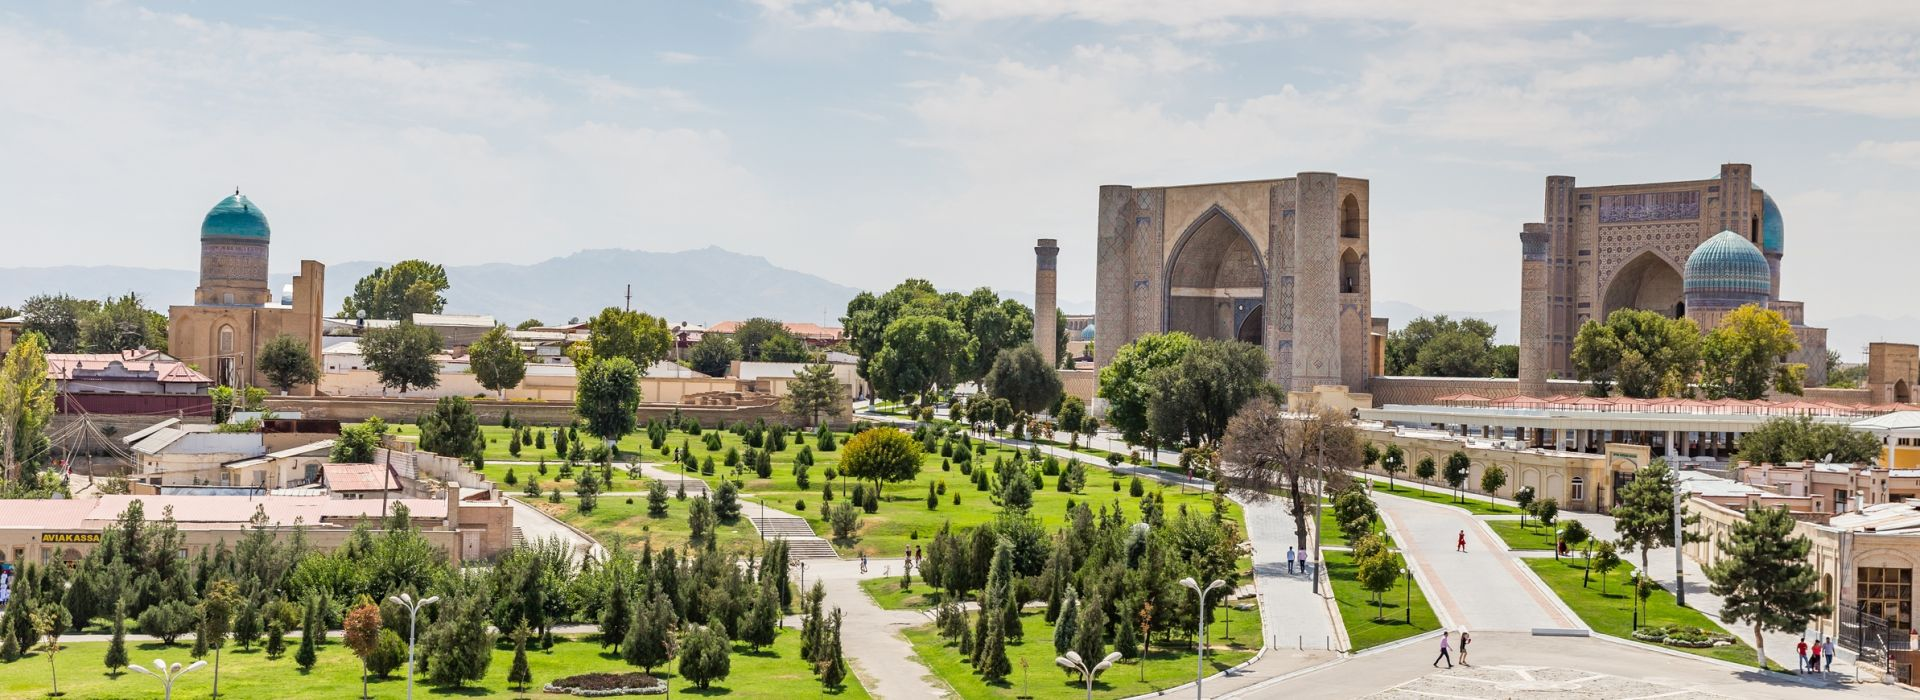 Travelling Uzbekistan - Tours and Holiday Packages in Uzbekistan